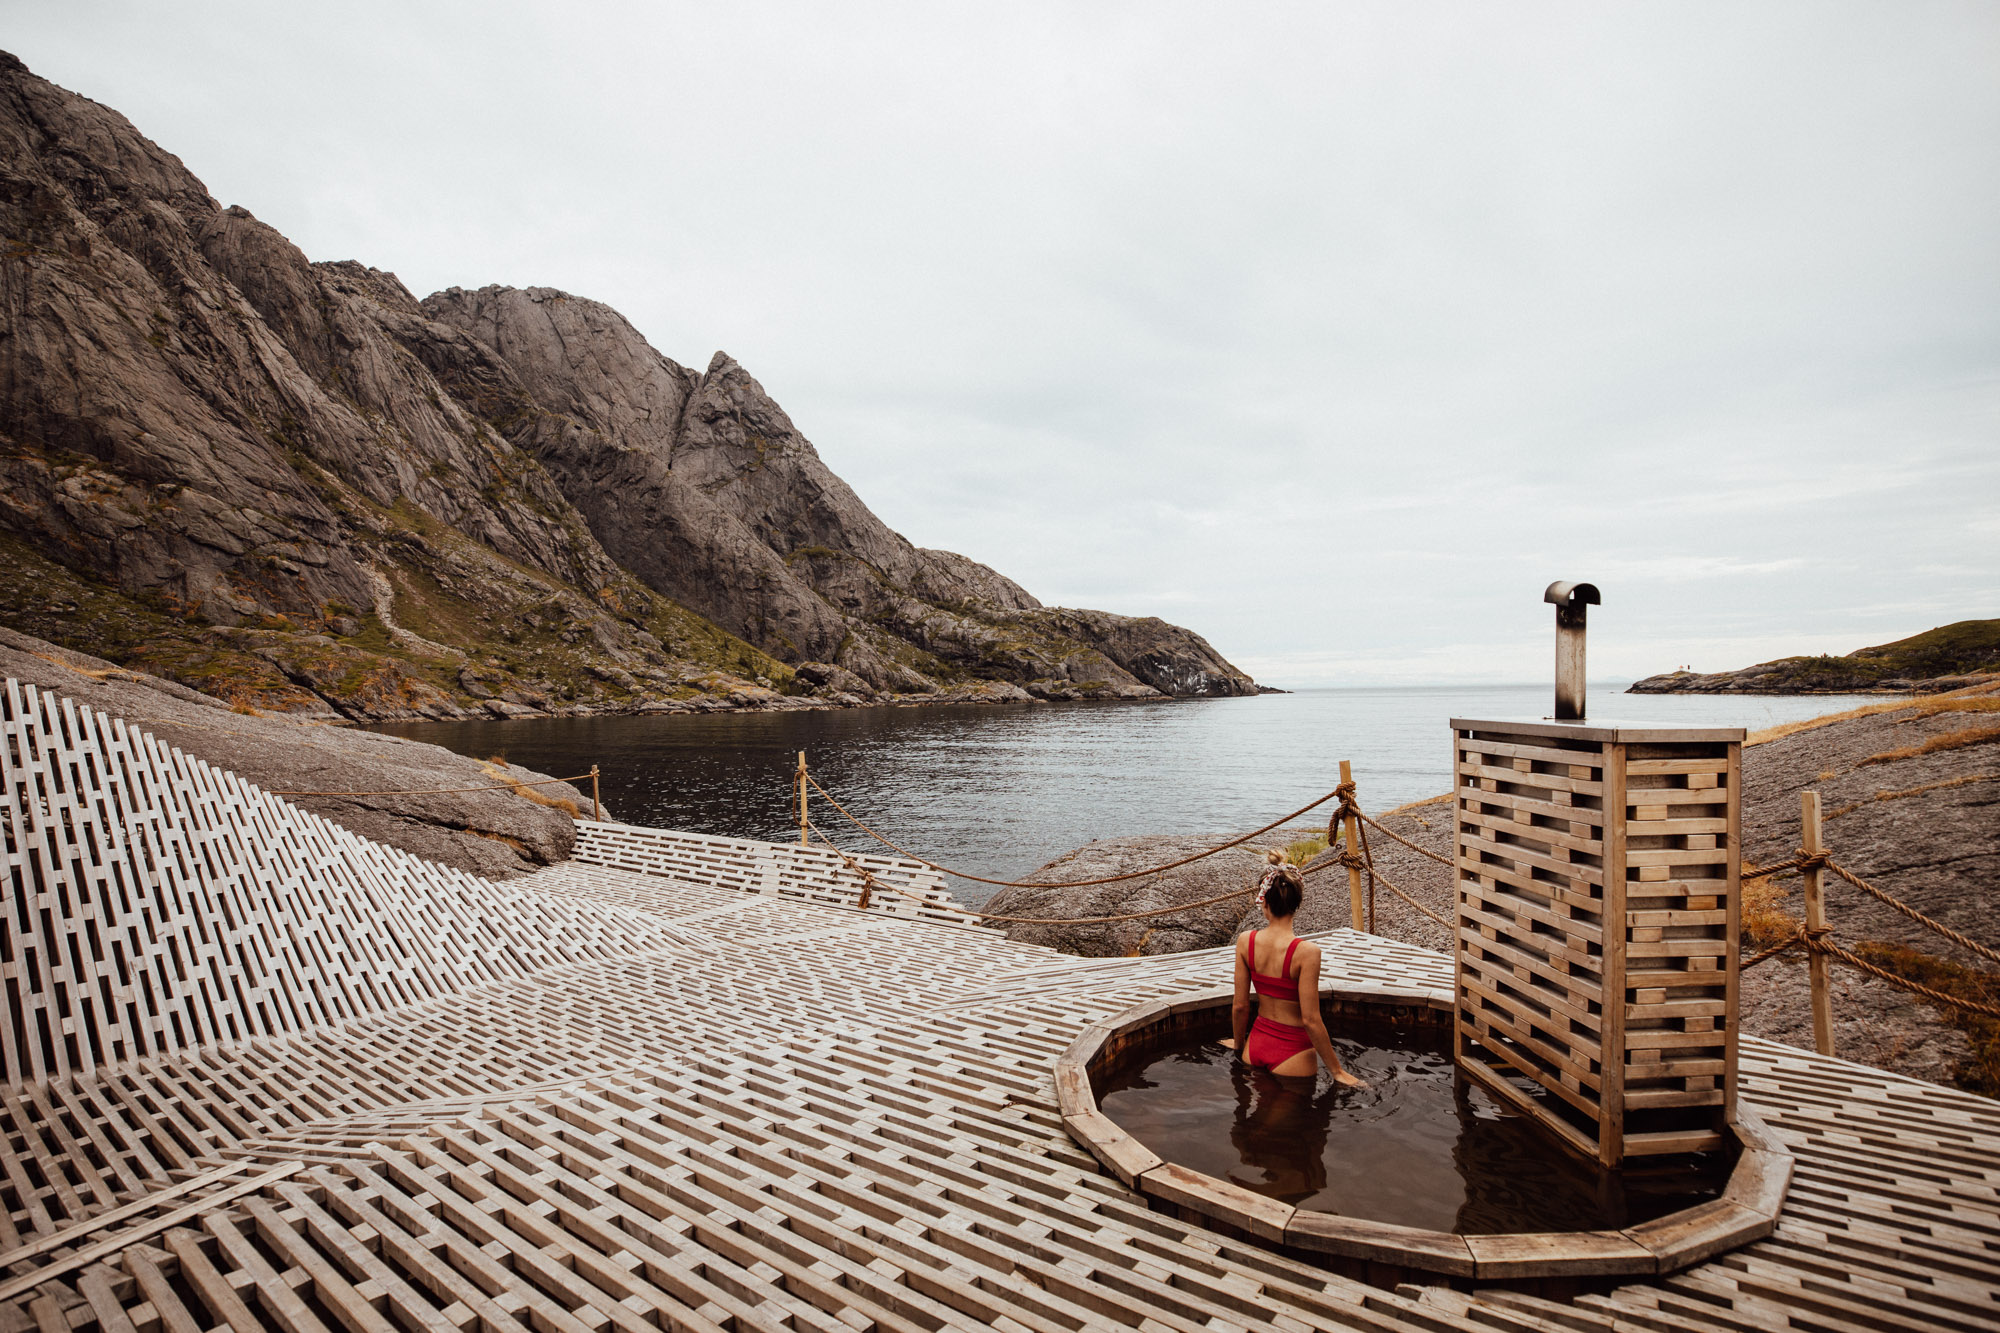 Sauna at Lofoten Hotel in Norway Nusfjord Arctic Resort Traditional Fishermen Red Cabin with a Fjord View - Find Us Lost